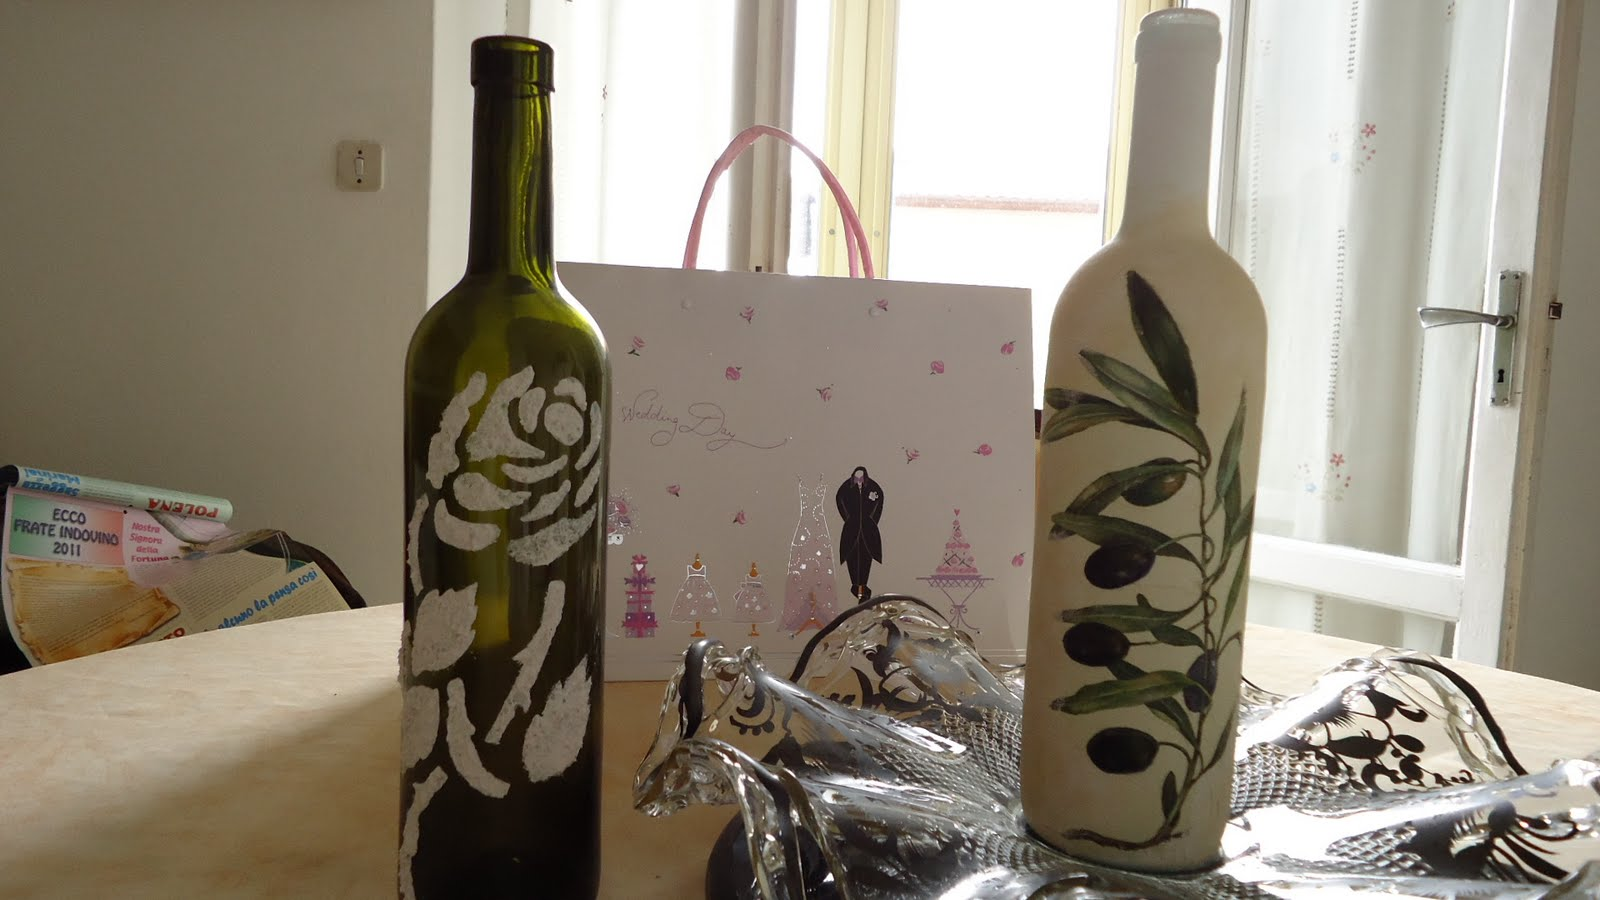 Manualidades Con Botellas De Vino http://manualidadesdenancy.blogspot.com/2011/05/botellas-decoradas.html